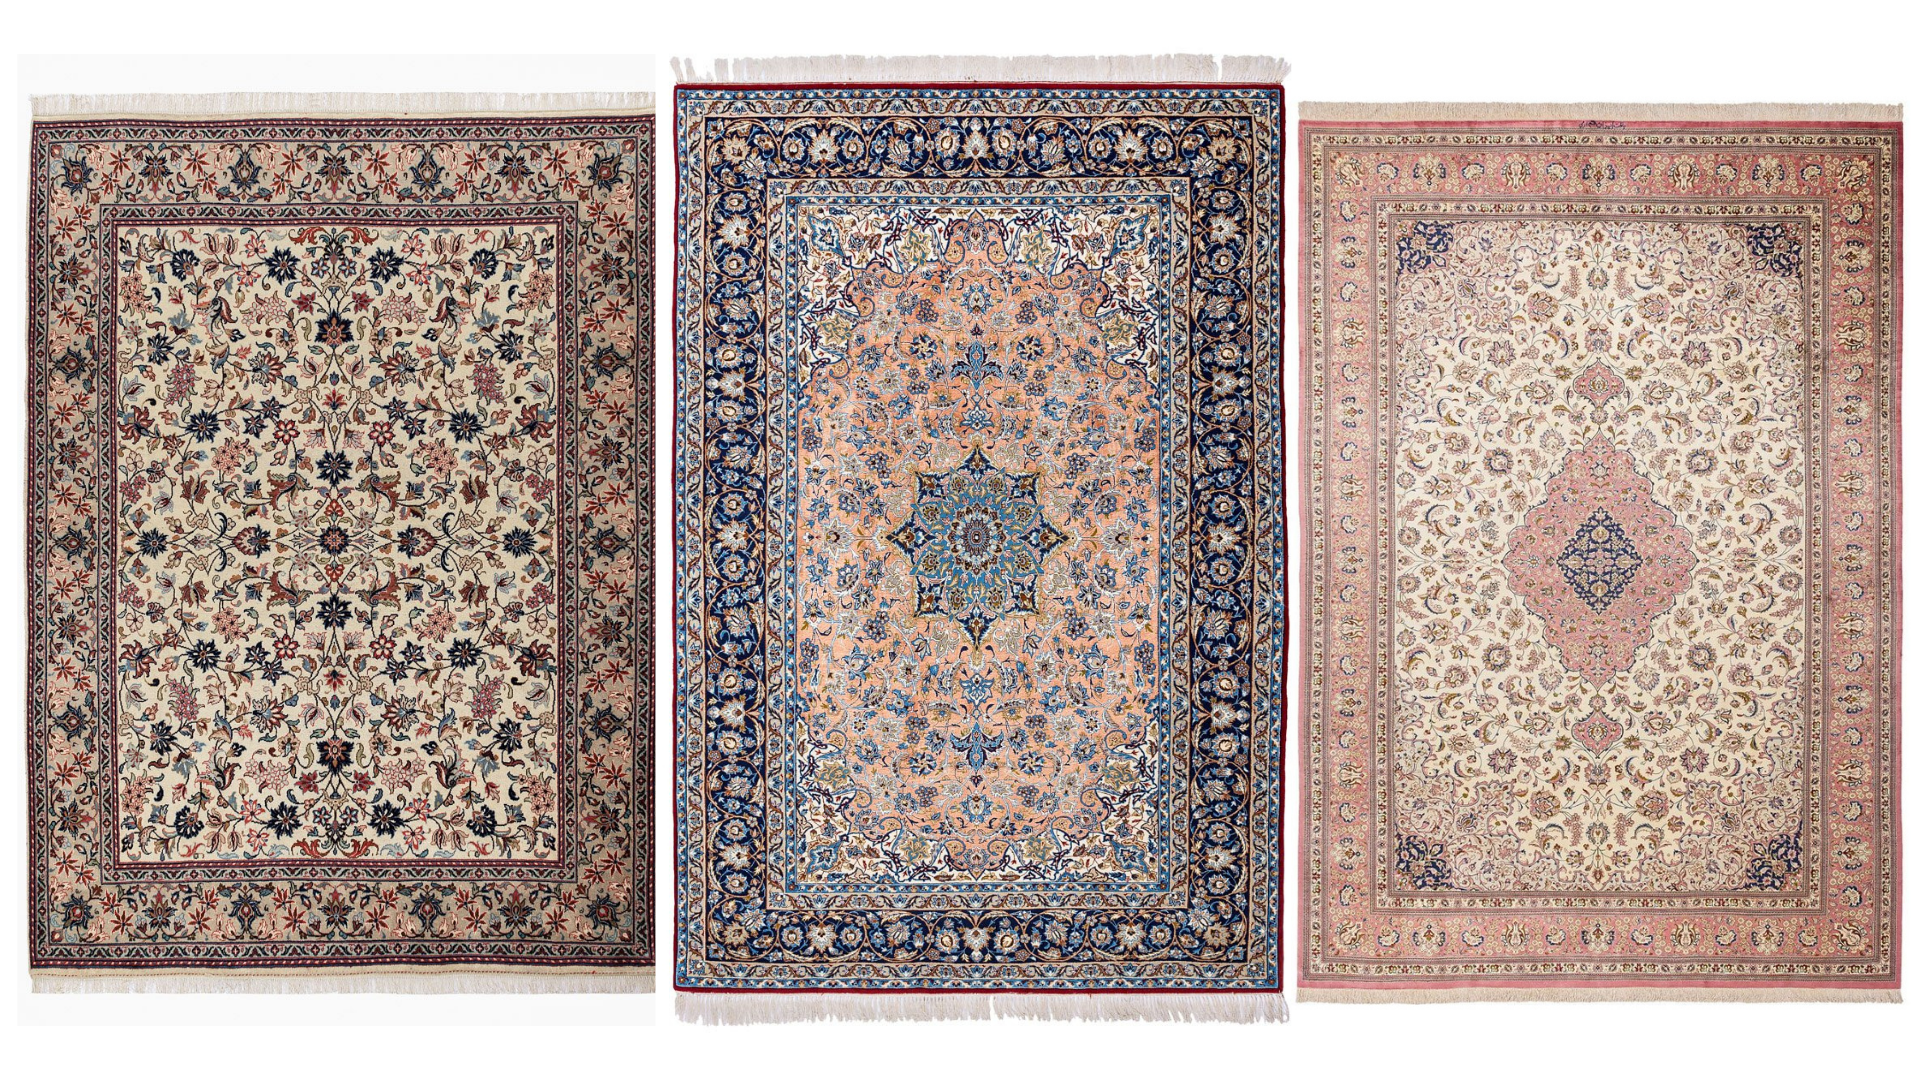 persian rugs, oriental rugs, home decor, home accessories, decor trends, autumn trends 2020, interior design, design ideas, rugs, carpets